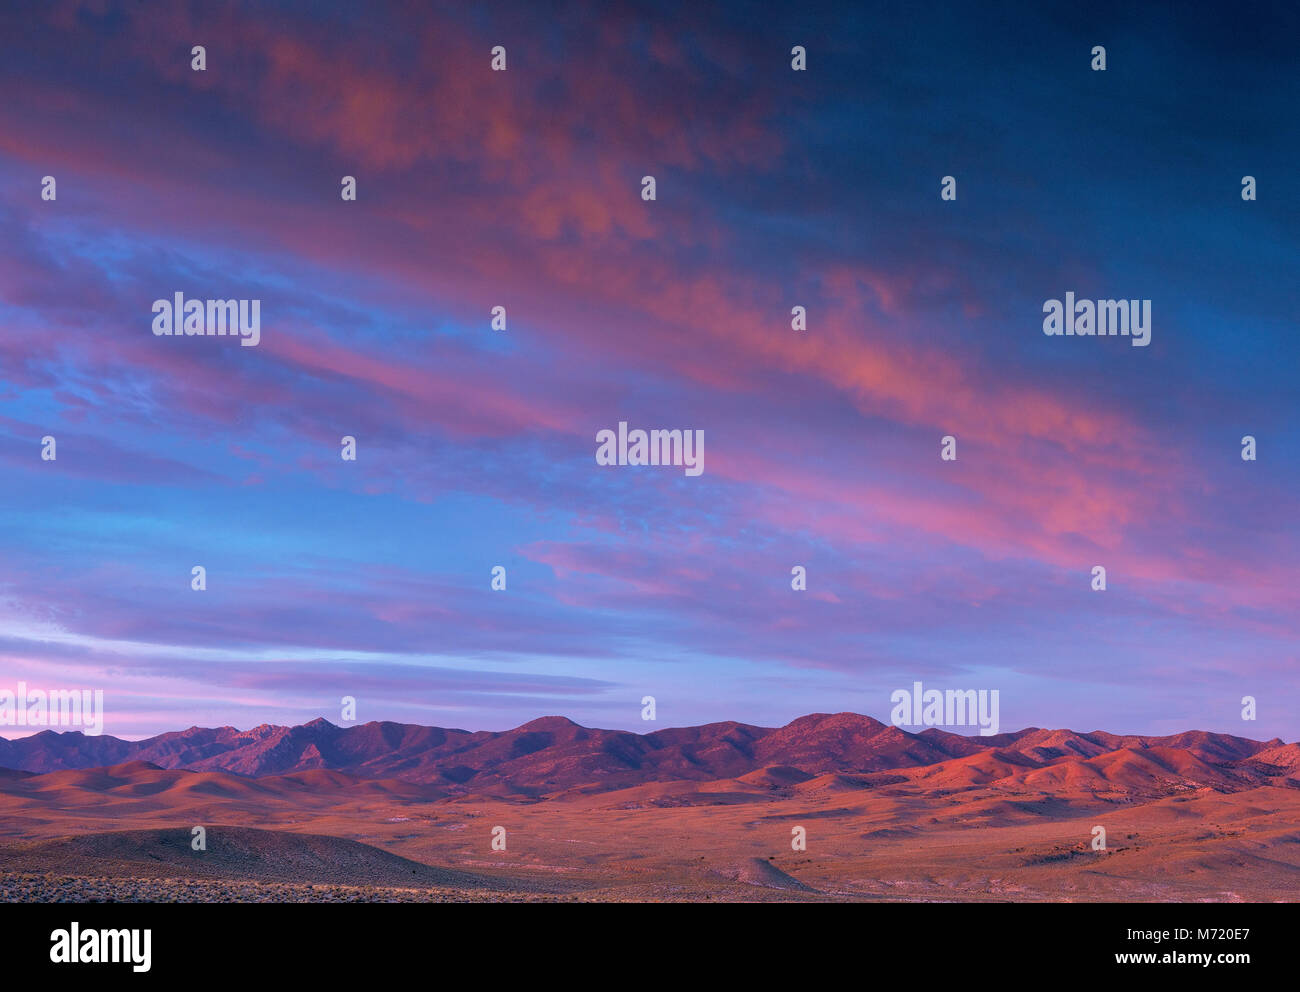 L'aube, le Coyote Sommet, Timpahute Gamme, Nevada Photo Stock